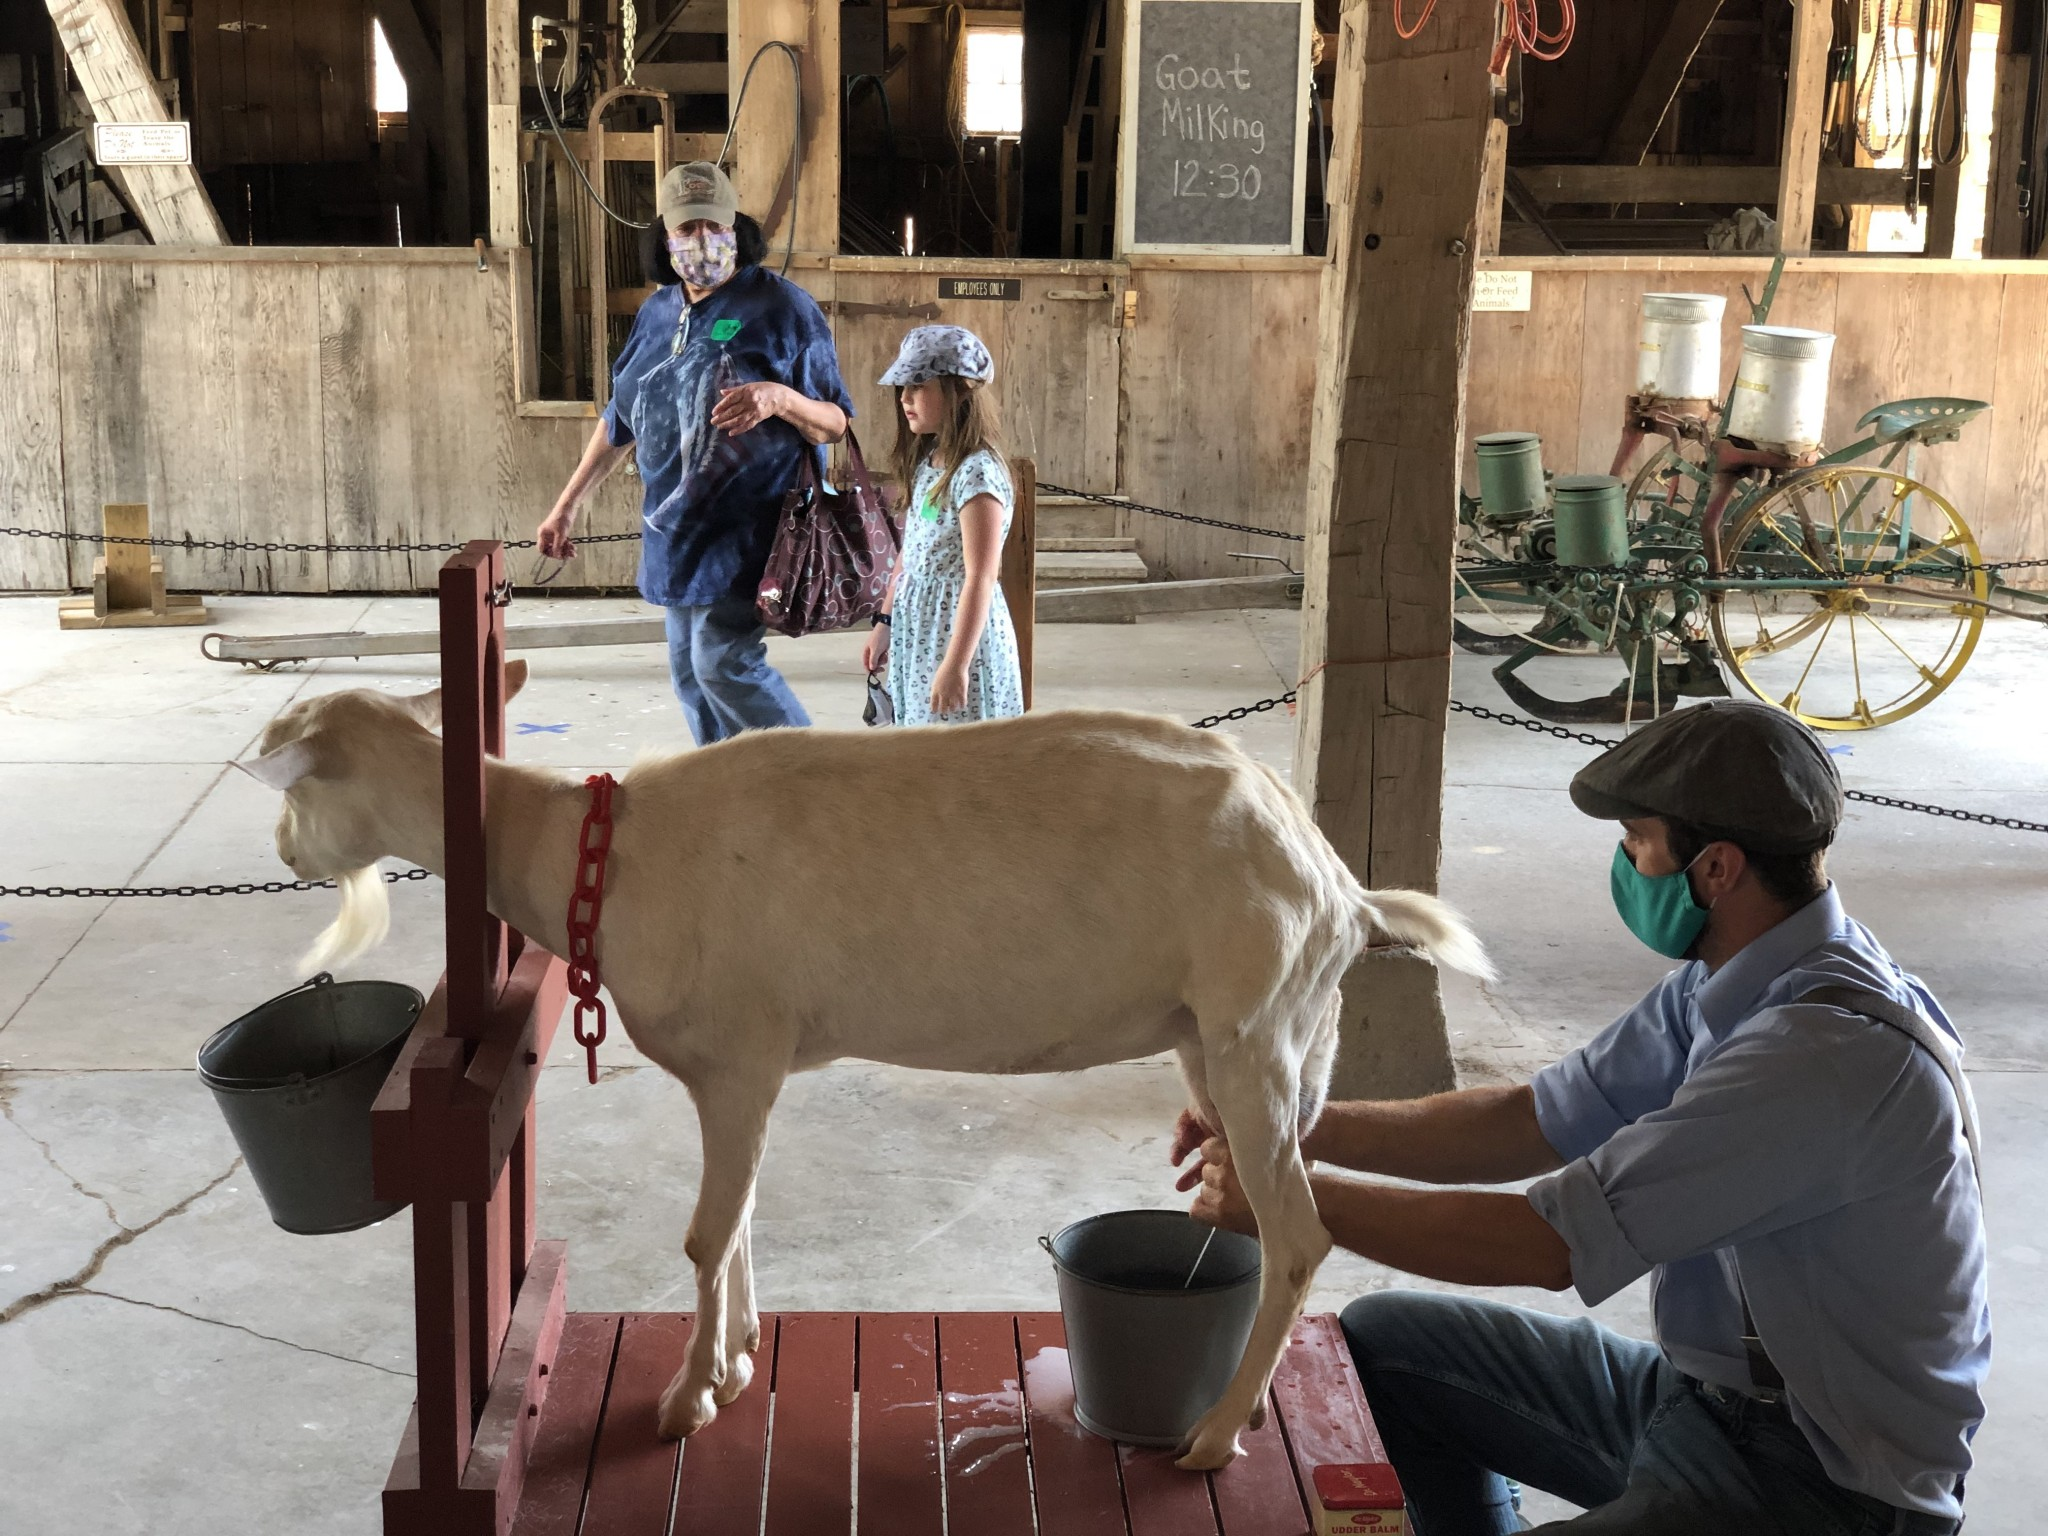 Sauder Village costumed guides and working craftsmen help bring history to life for students of all ages. (Photo courtesy of Sauder Village)